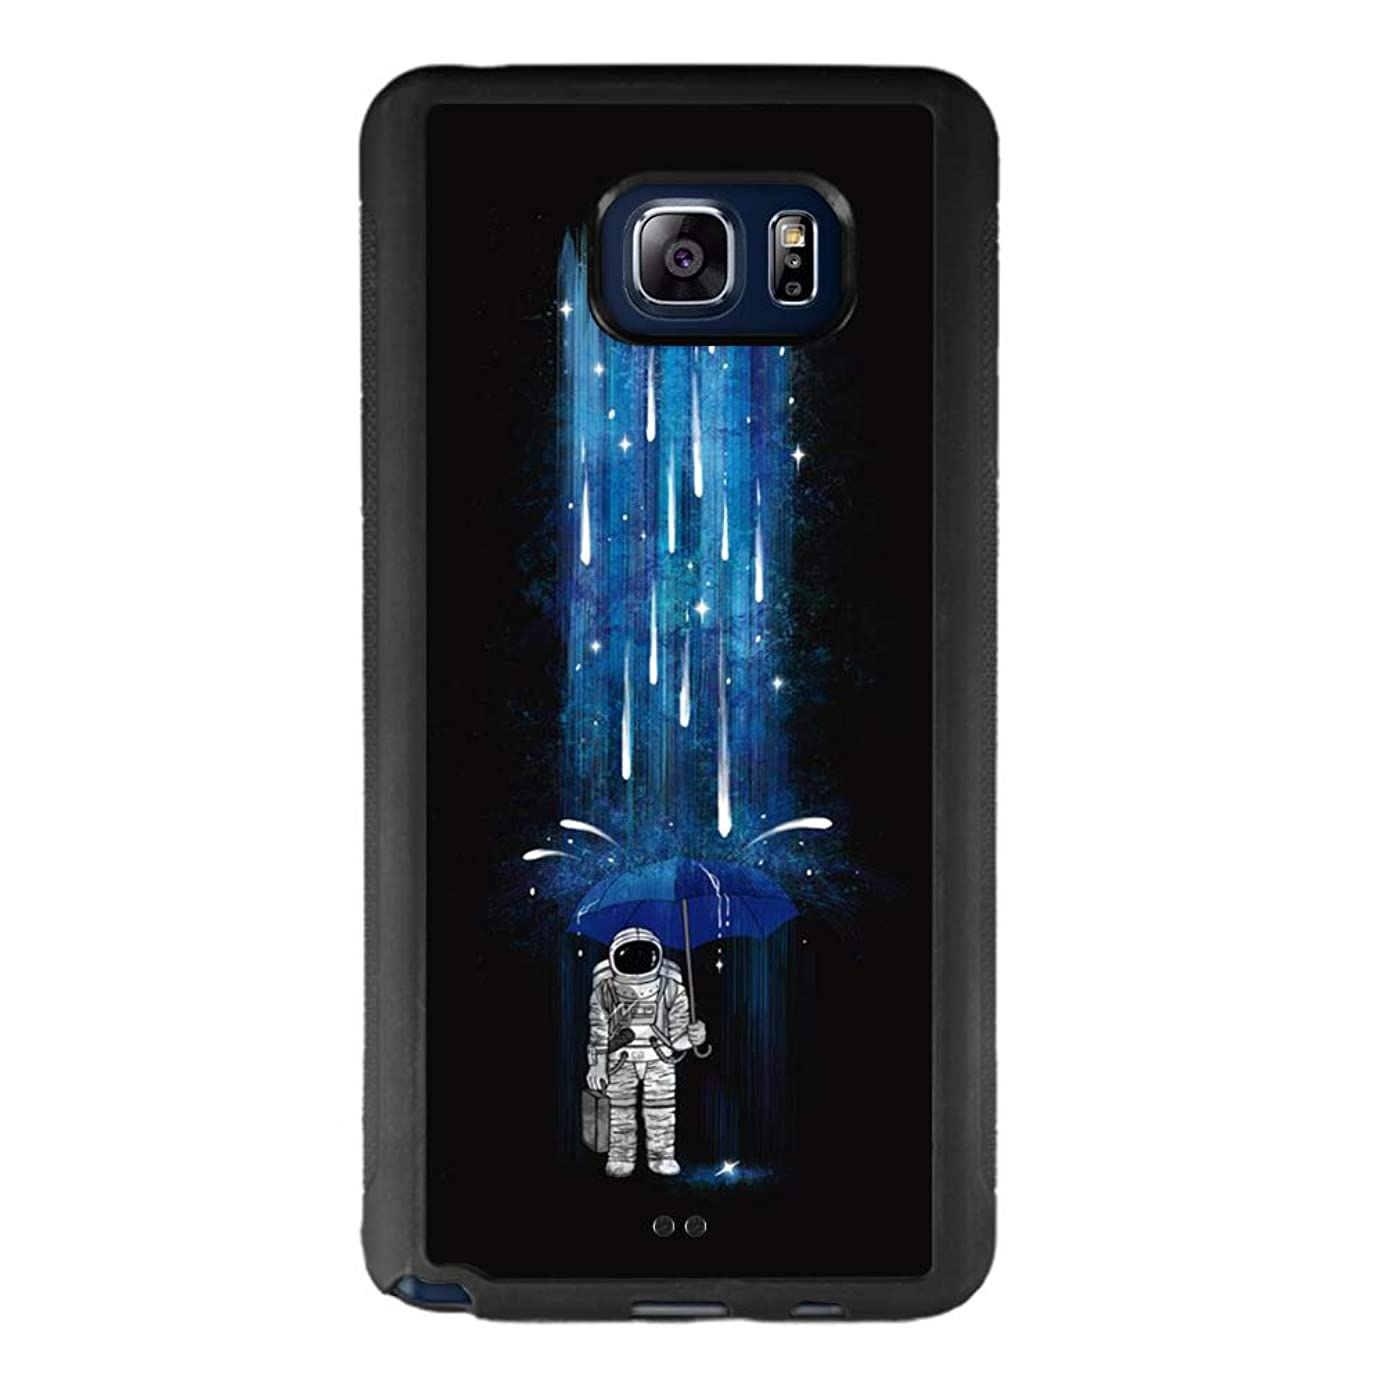 Case for Samsung Galaxy Note 5, Astronaut with Umbrella Anti-Scratch Hard Backplate Back Cover for Samsung Galaxy Note 5 Black Shock-Proof Protective Case [Anti-Slippery] yct7788080